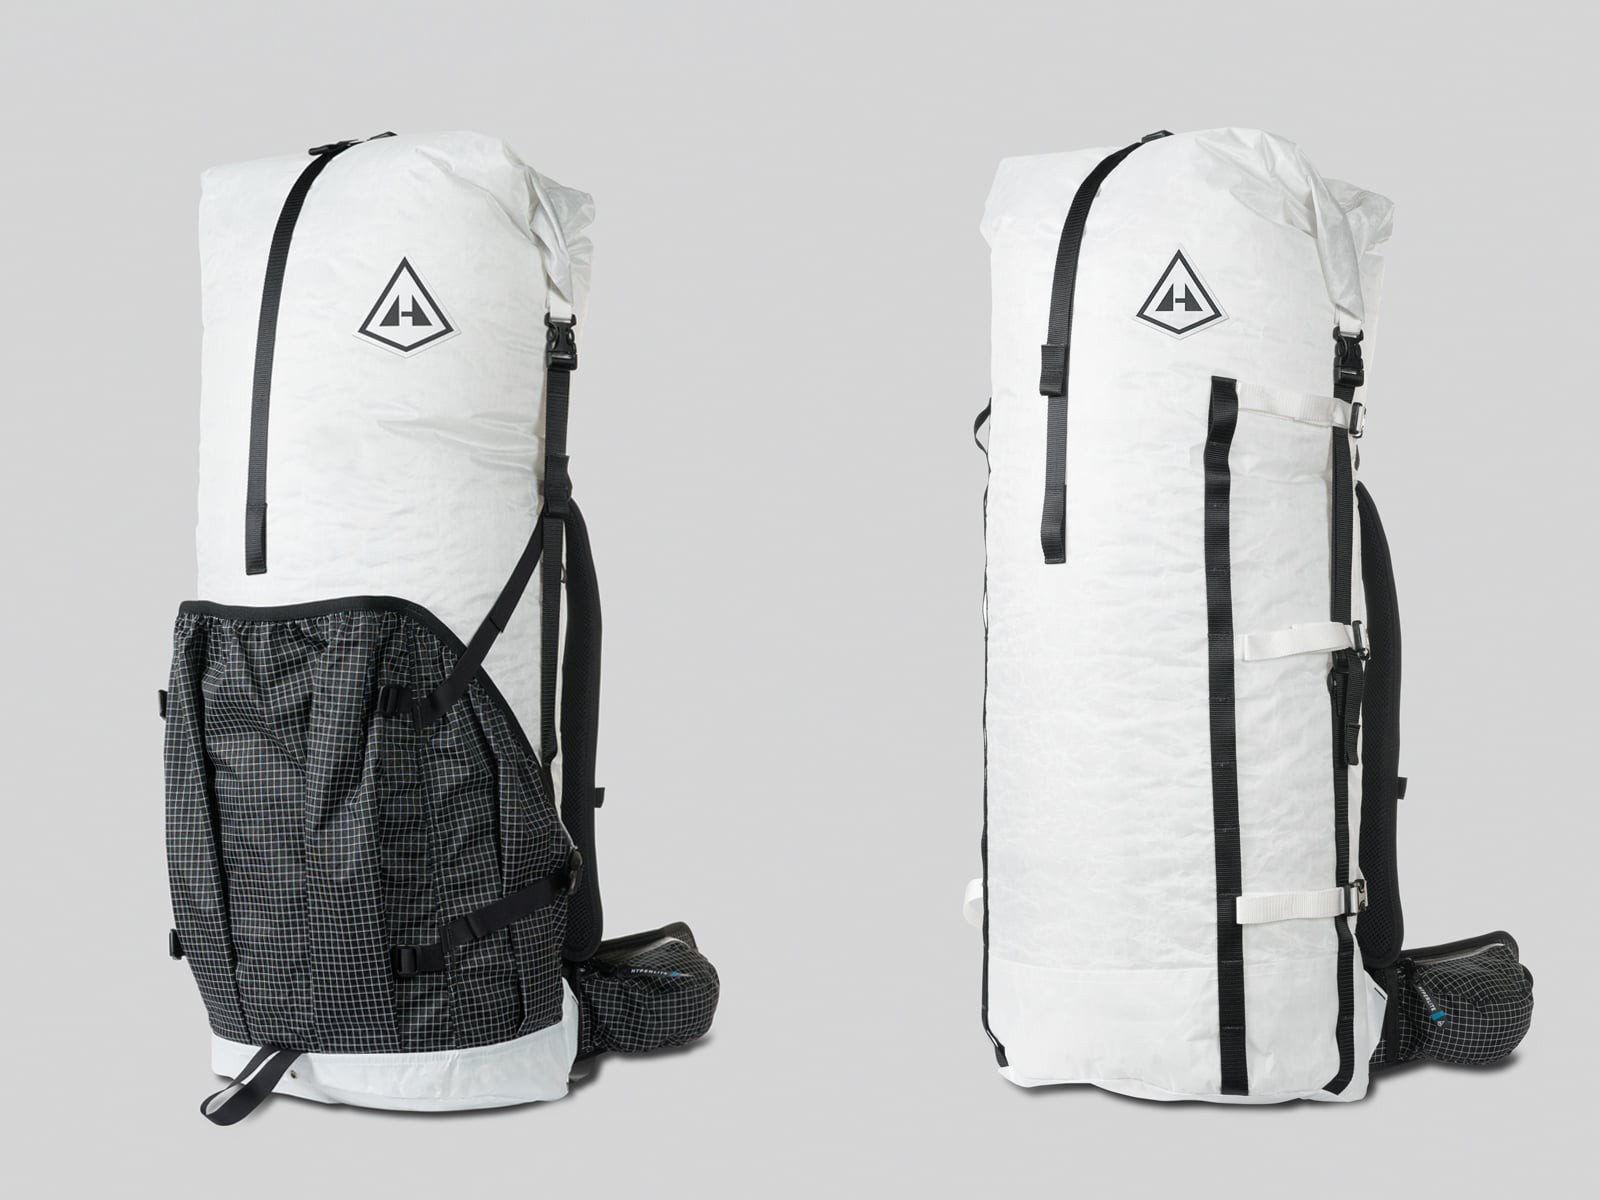 89a1f1ccb Hyperlite Mountain Gear Ultralight Backpack Review: Windrider ...